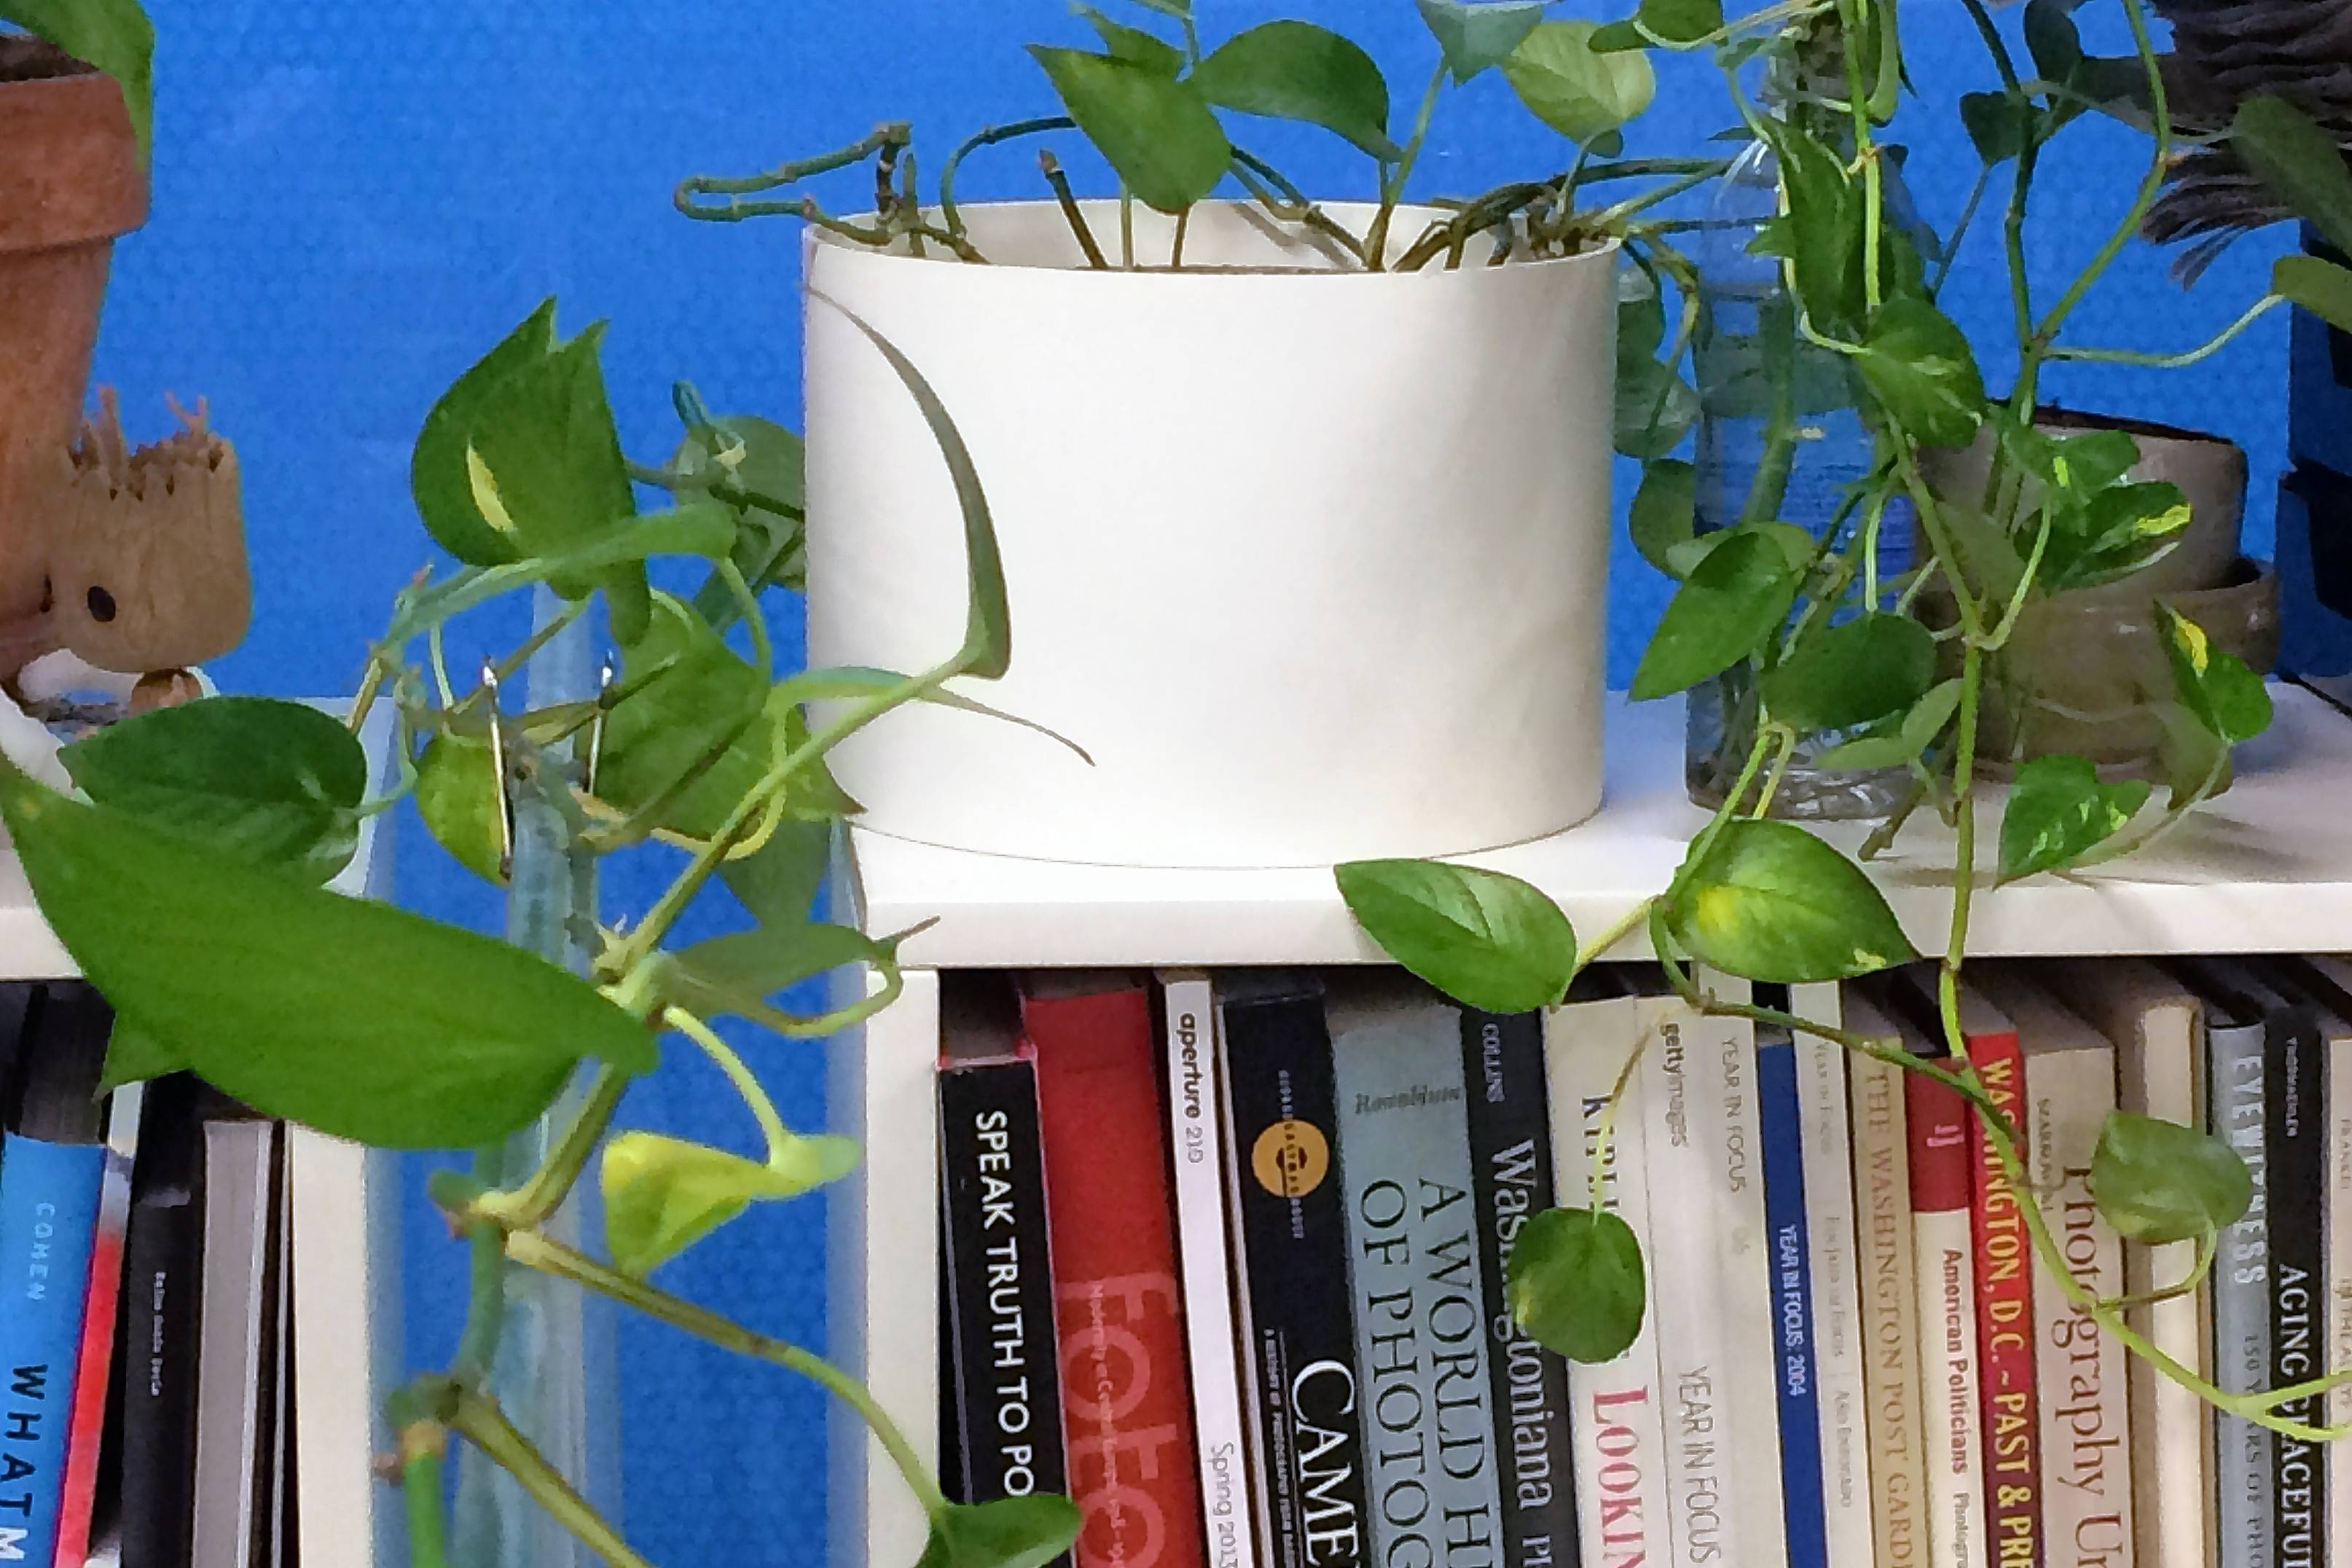 With its forgiving nature, the pothos vine is among a handful of ironclad houseplants that put up with the abuse of the dry and gloomy environment of the office cubicle.